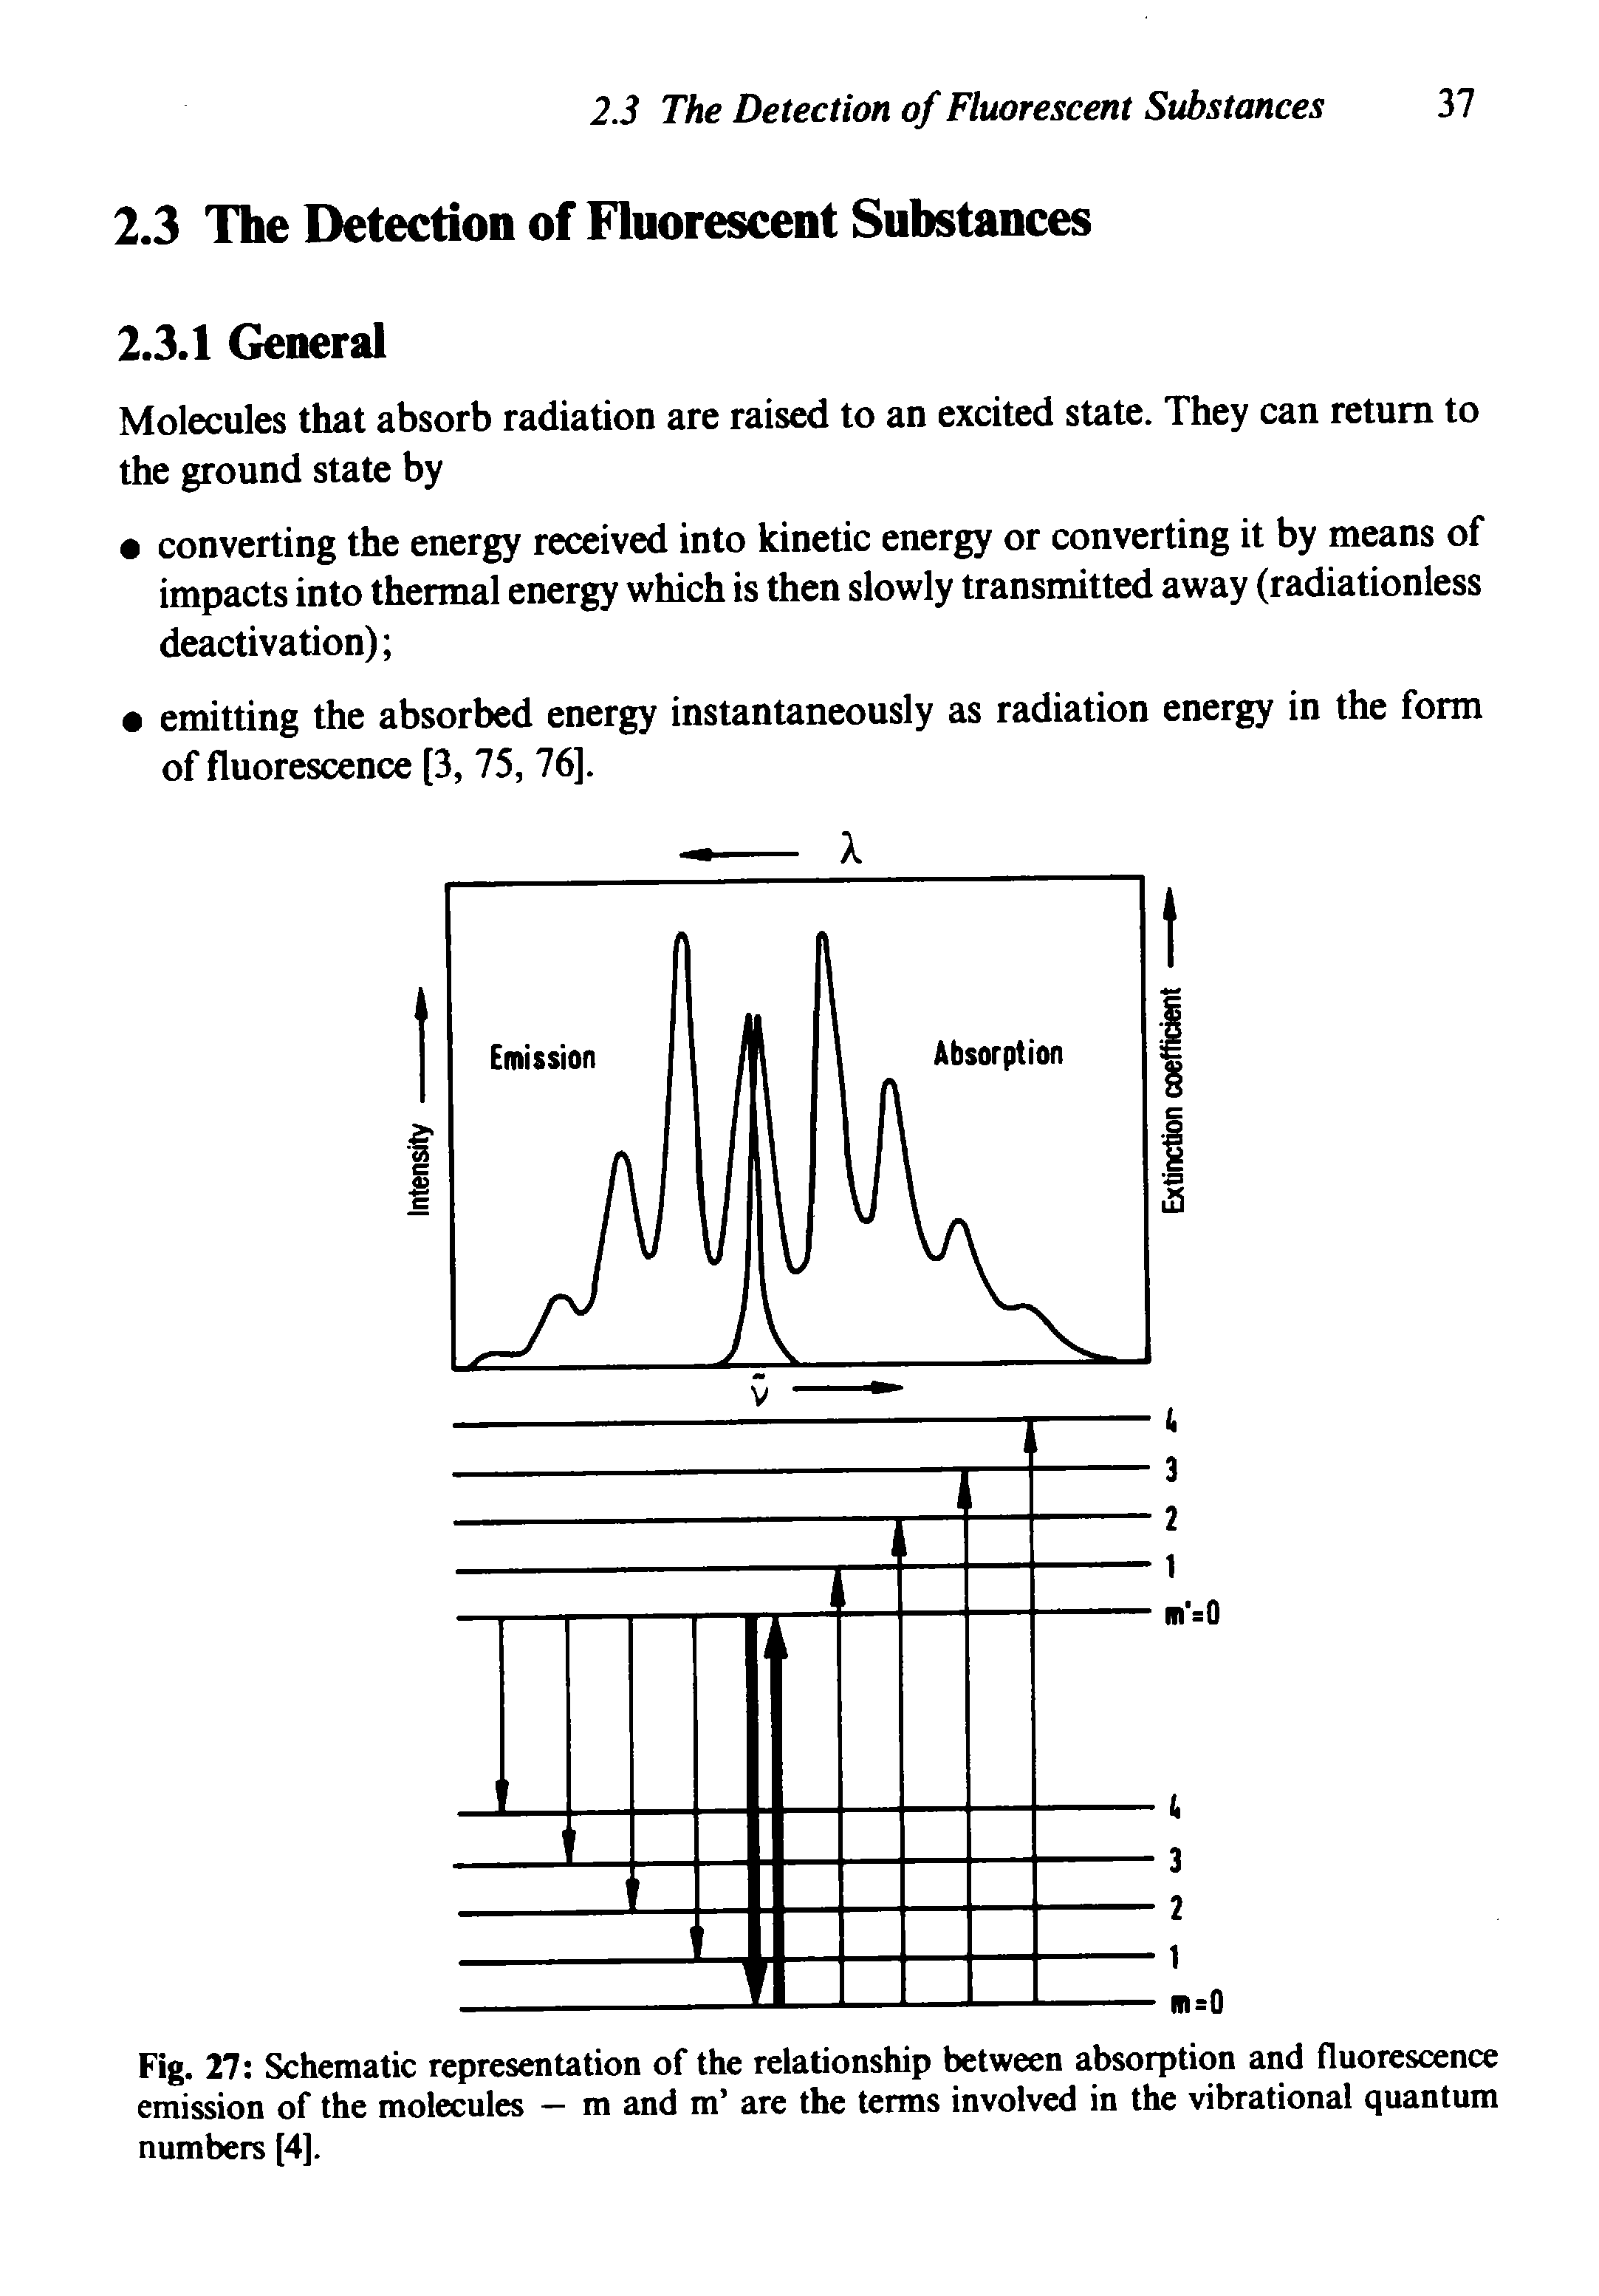 Fig. 27 Schematic representation of the relationship between absorption and fluorescence emission of the molecules — m and m are the terms involved in the vibrational quantum numbers [4],...